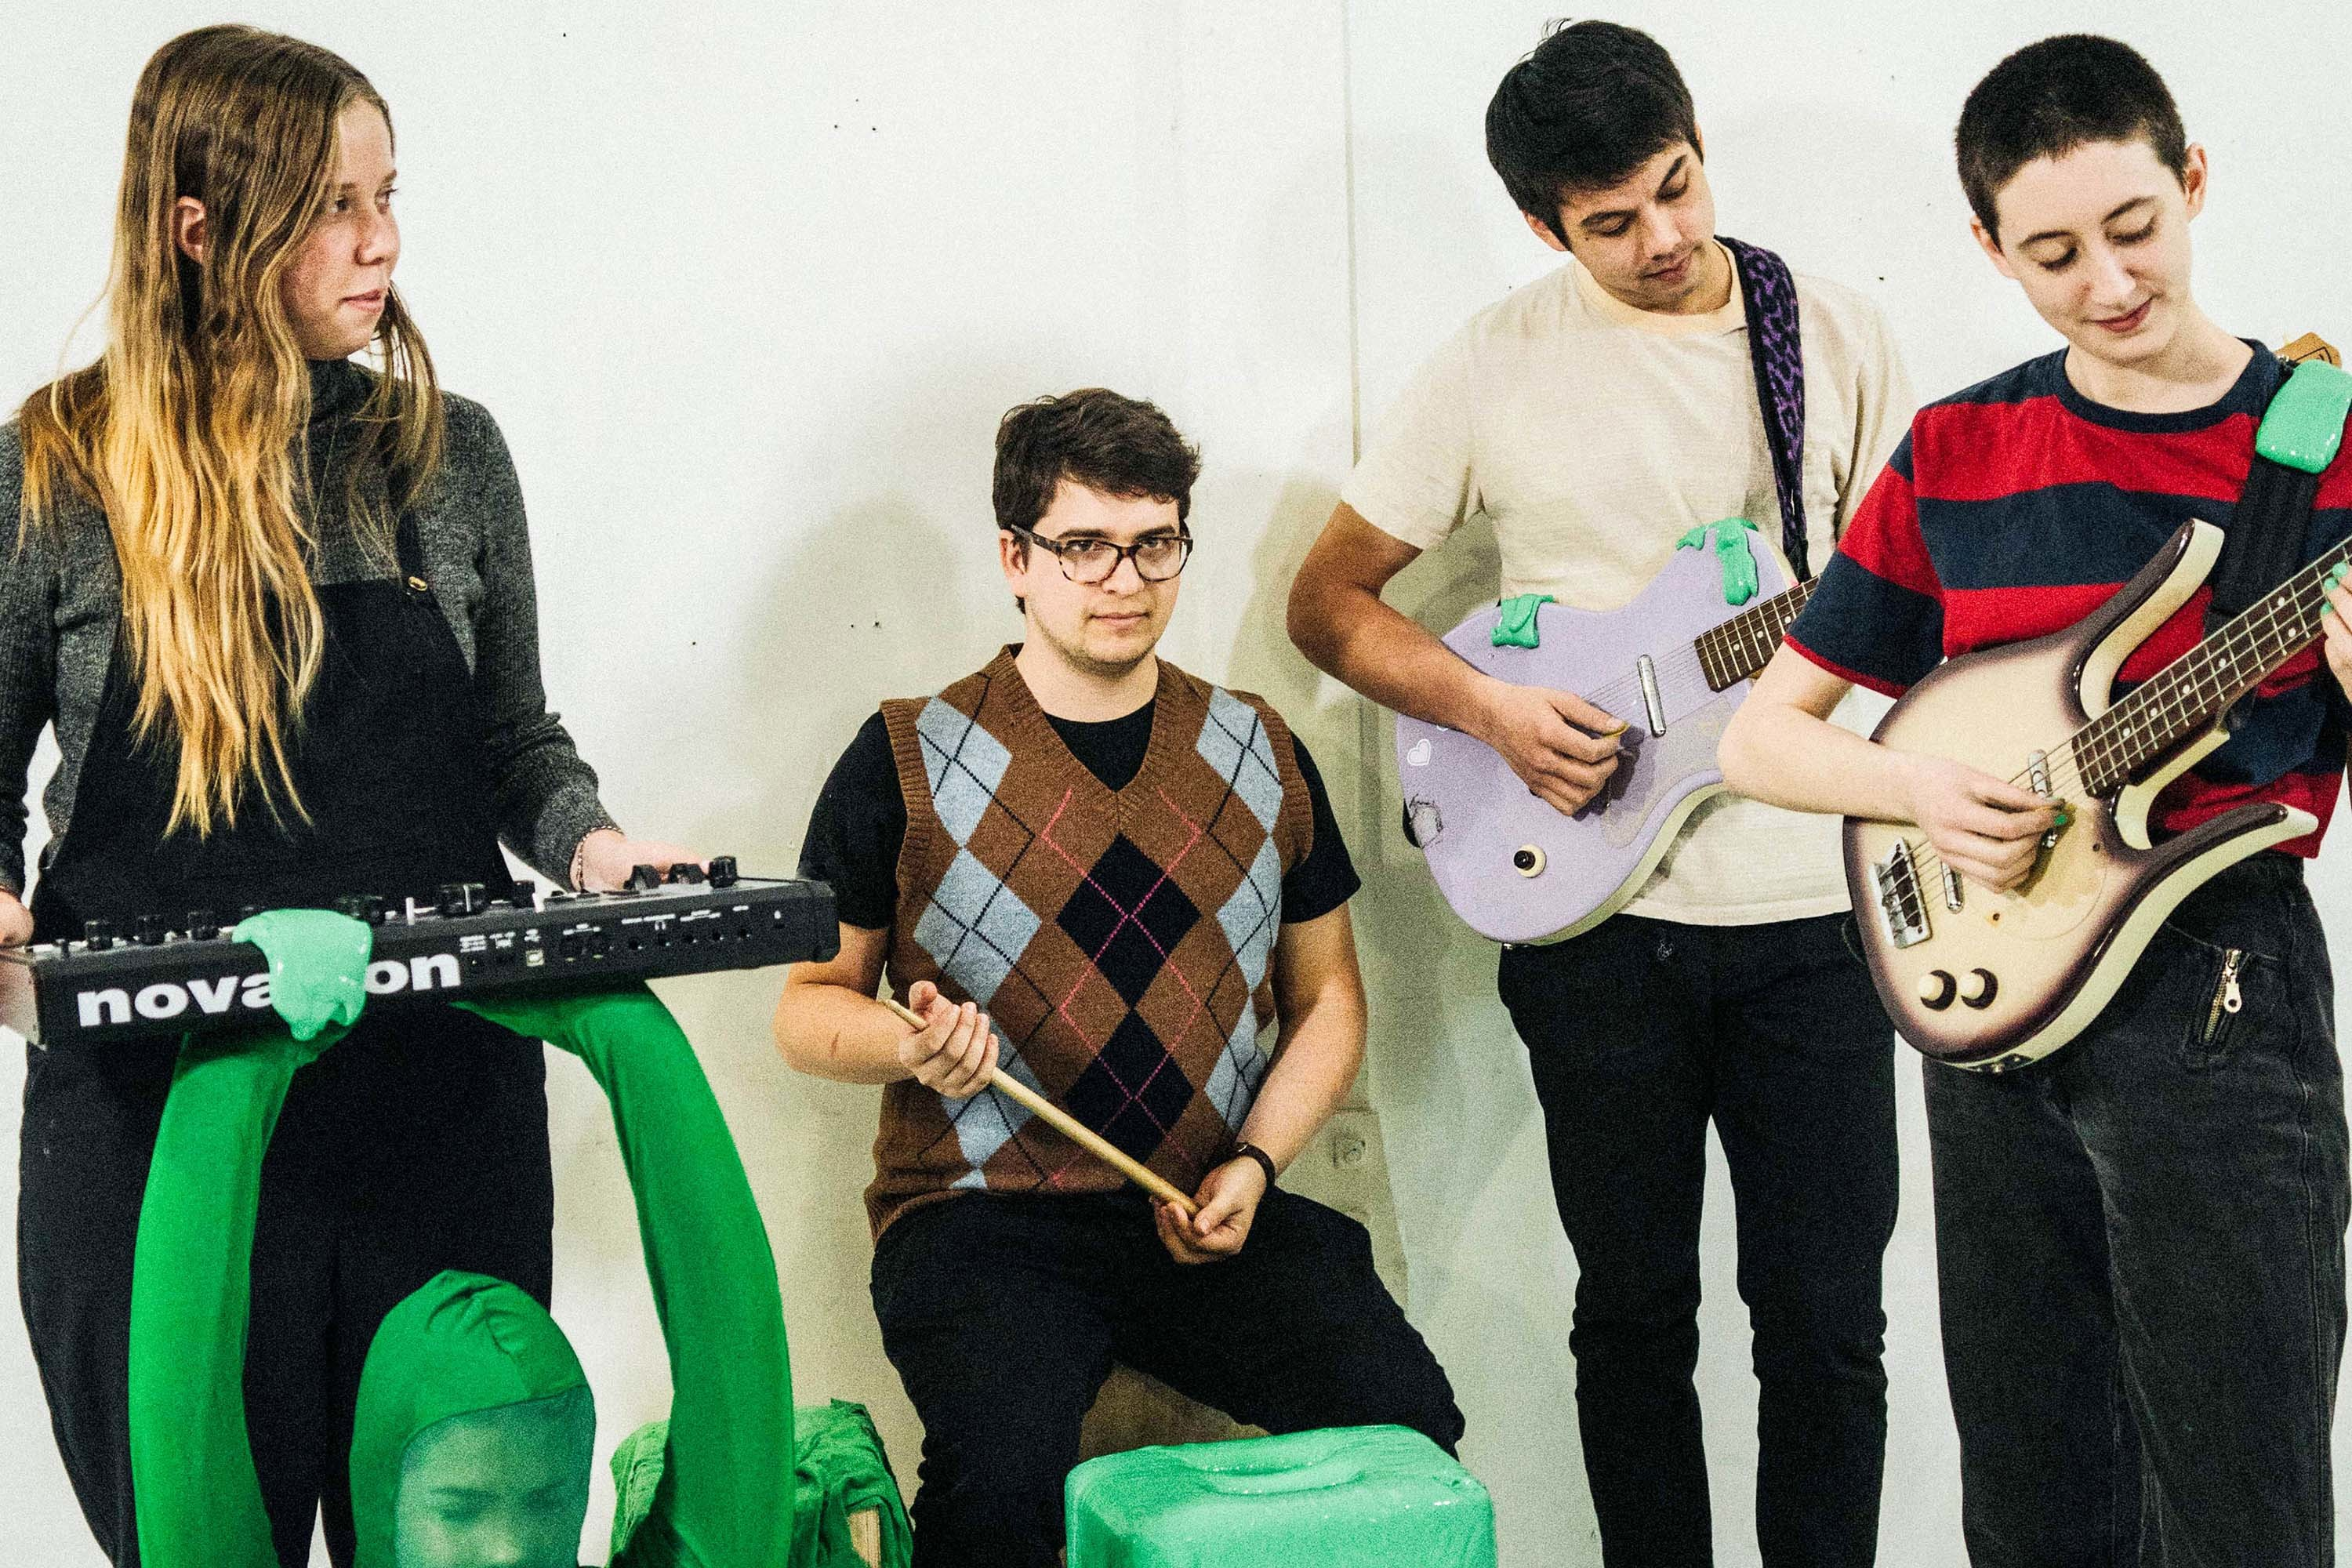 Frankie Cosmos announce new album 'Vessel'